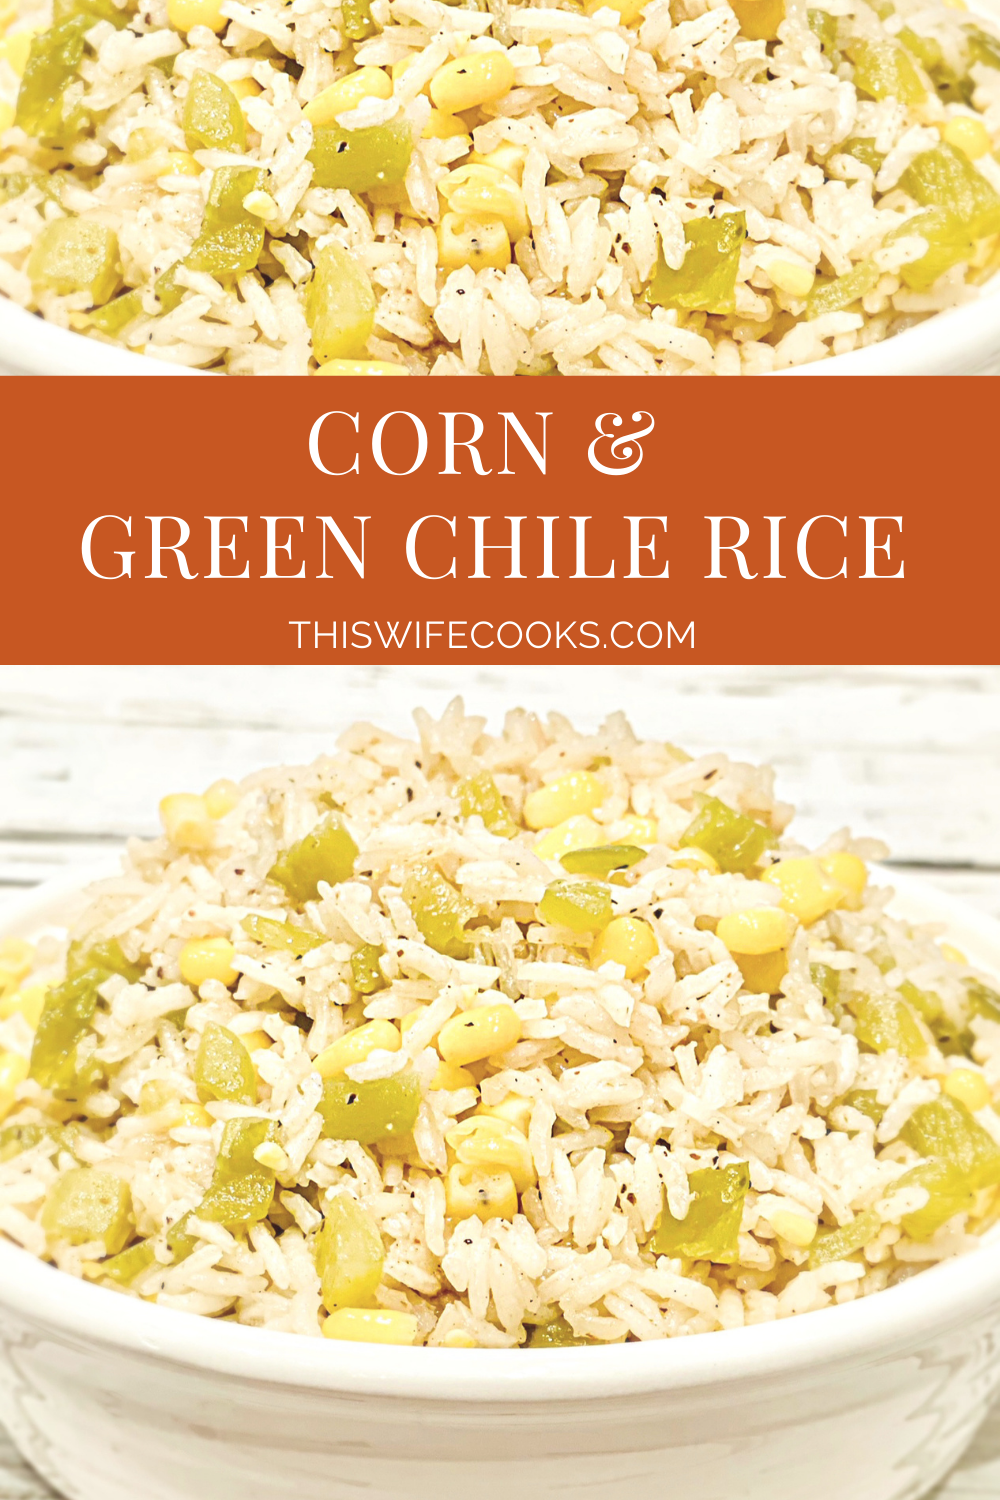 The perfect accompaniment to your favorite Mexican dishes! This easy to make and budget-friendly side dish is ready to serve in just 30 minutes! via @thiswifecooks